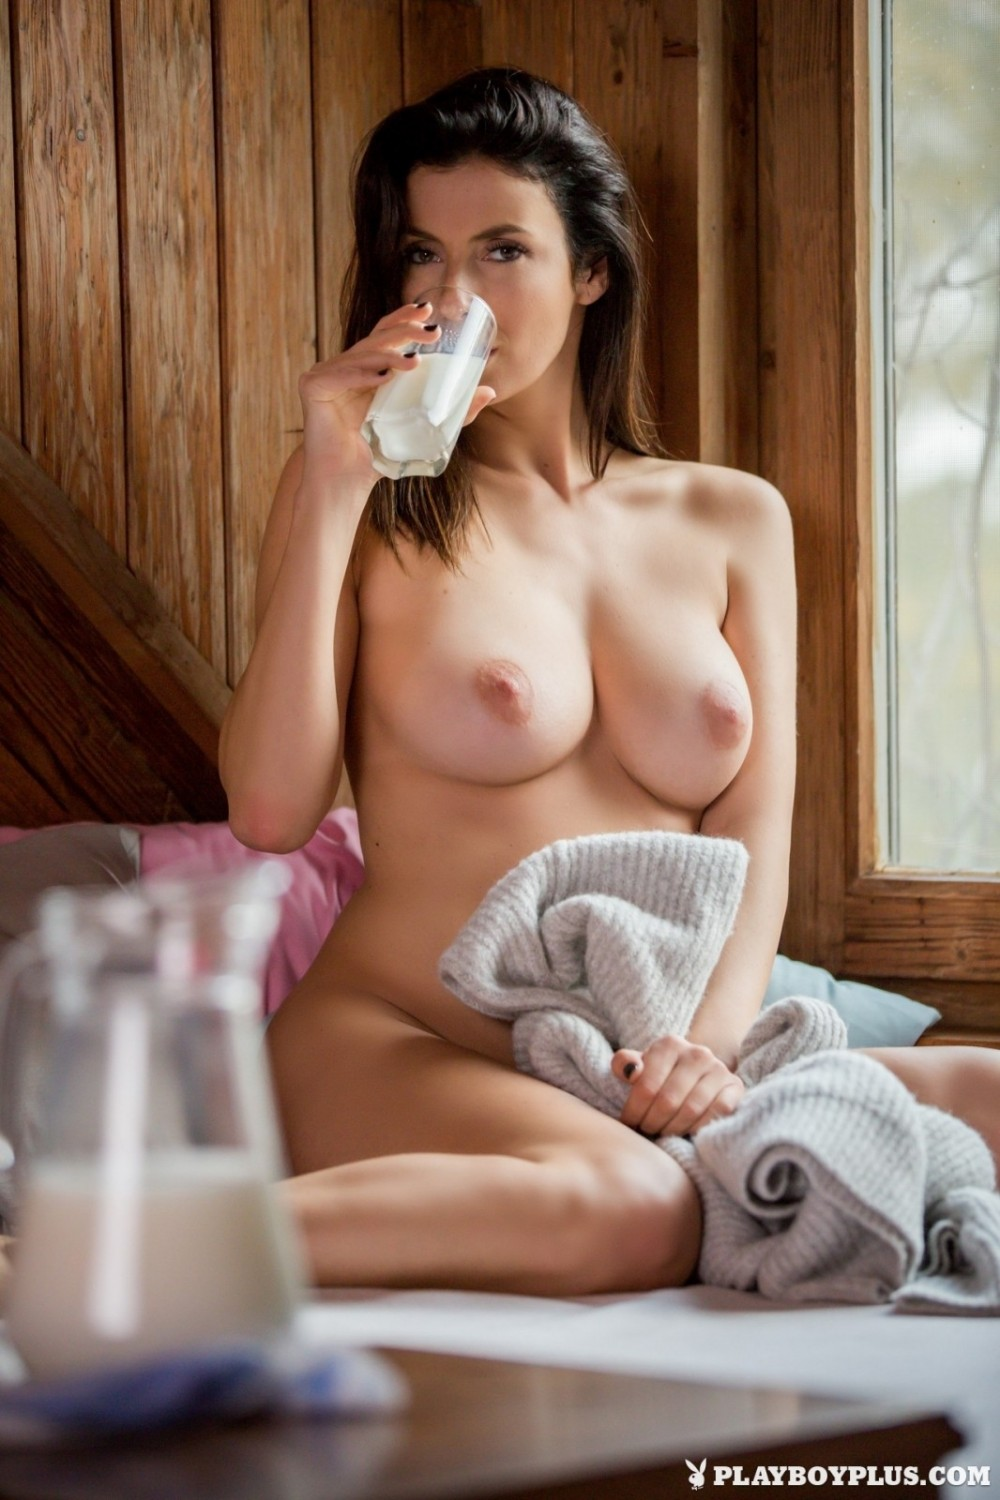 Dark-haired babe drinks milk and masturbates at once